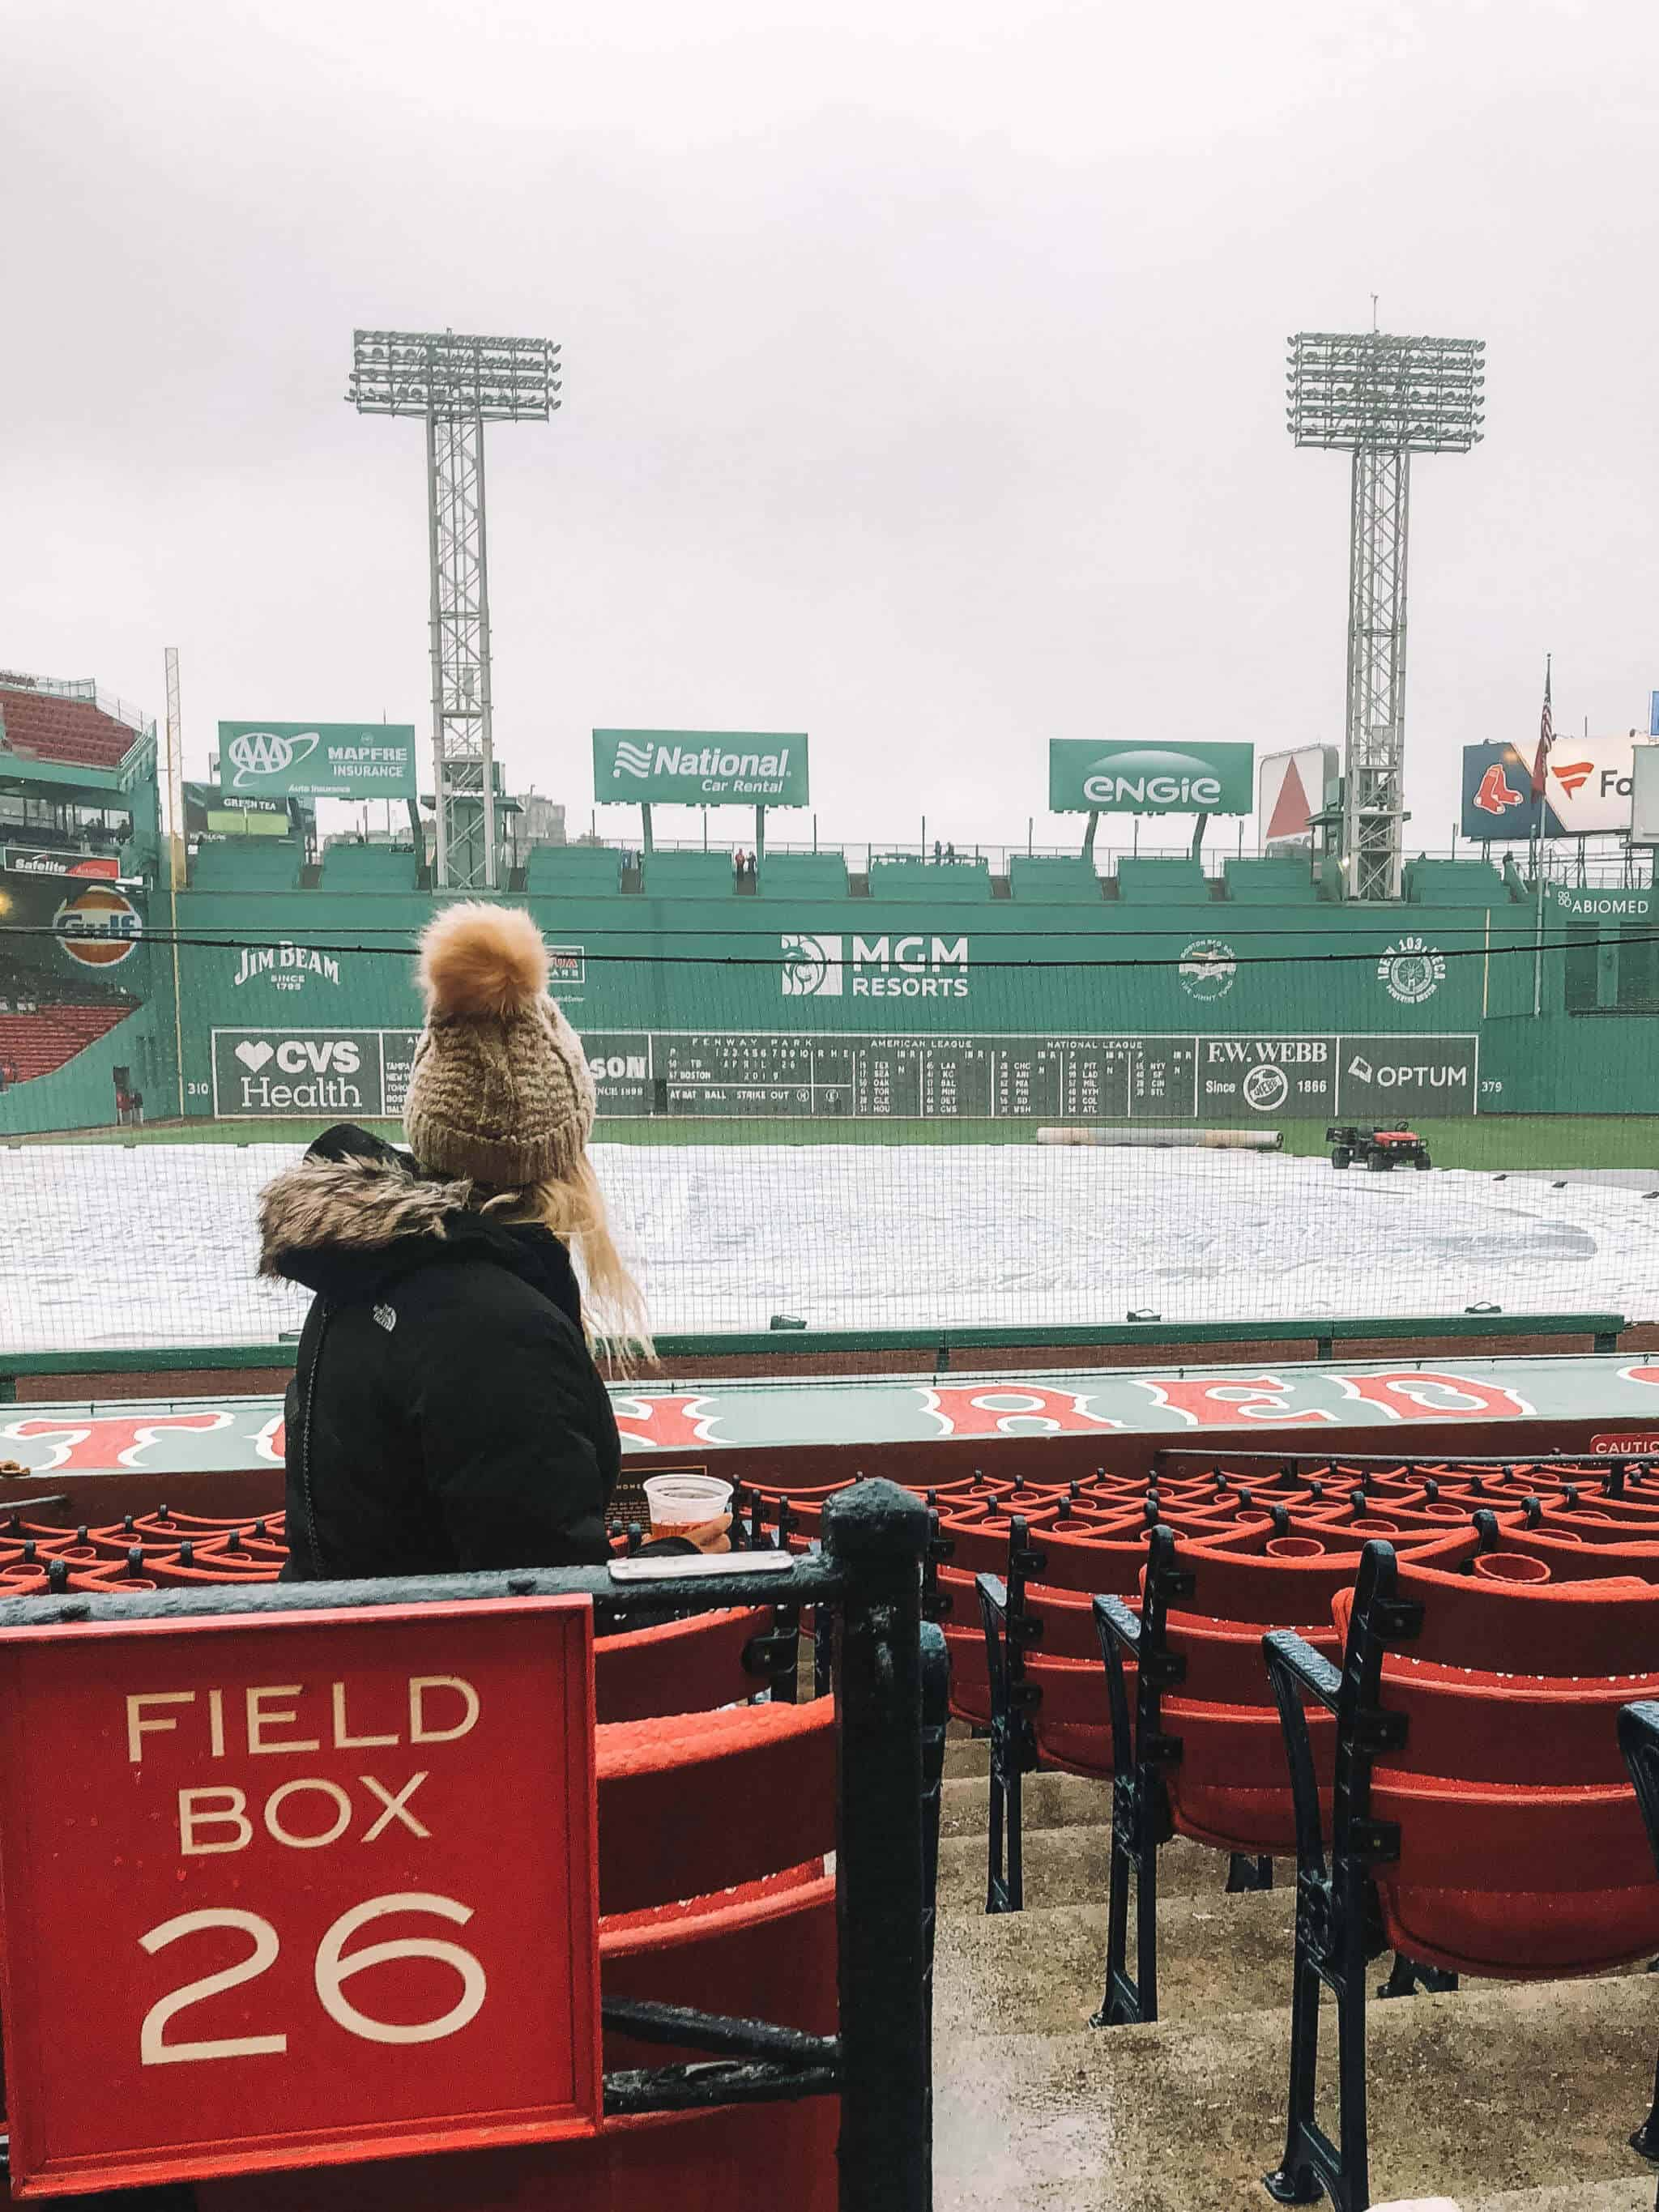 10 Things to Do in Boston - Fenway Park